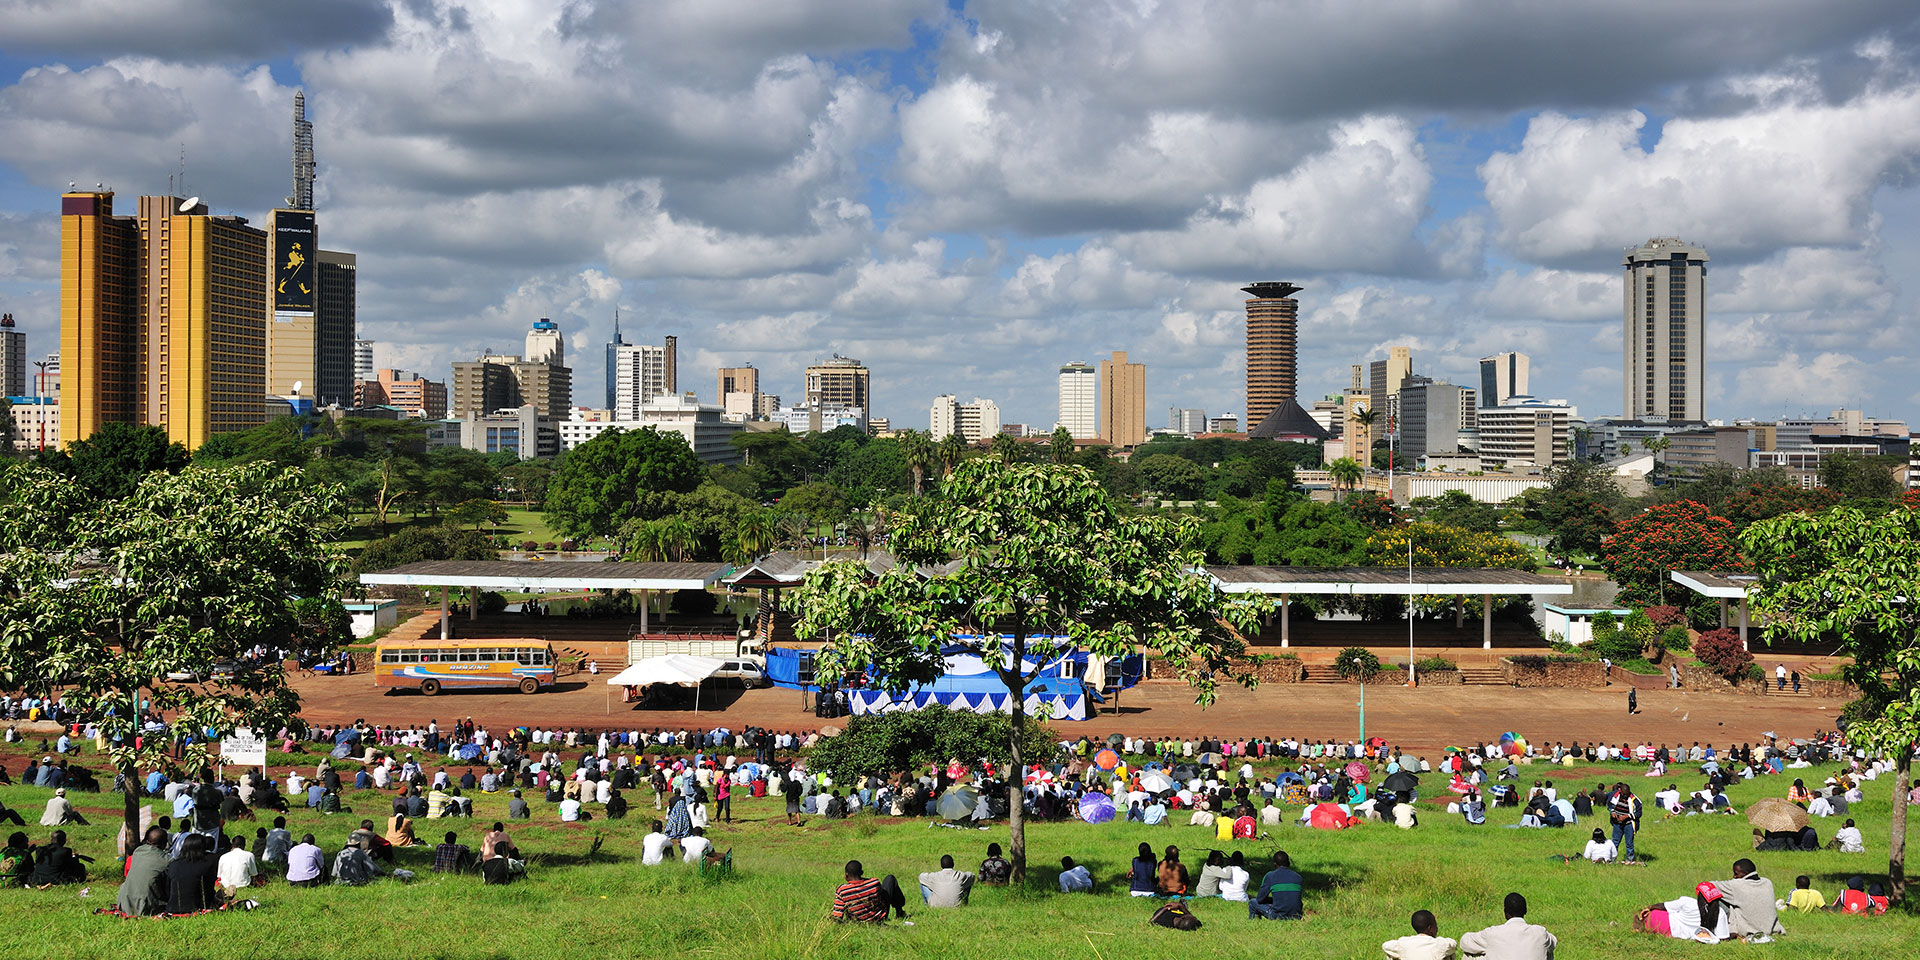 Nairobi, Kenya. Kenya has one of Africa's largest economies by GDP and imports $32 billion every year, making it an ideal trade partner. Photo courtesy of magicalkenya.com